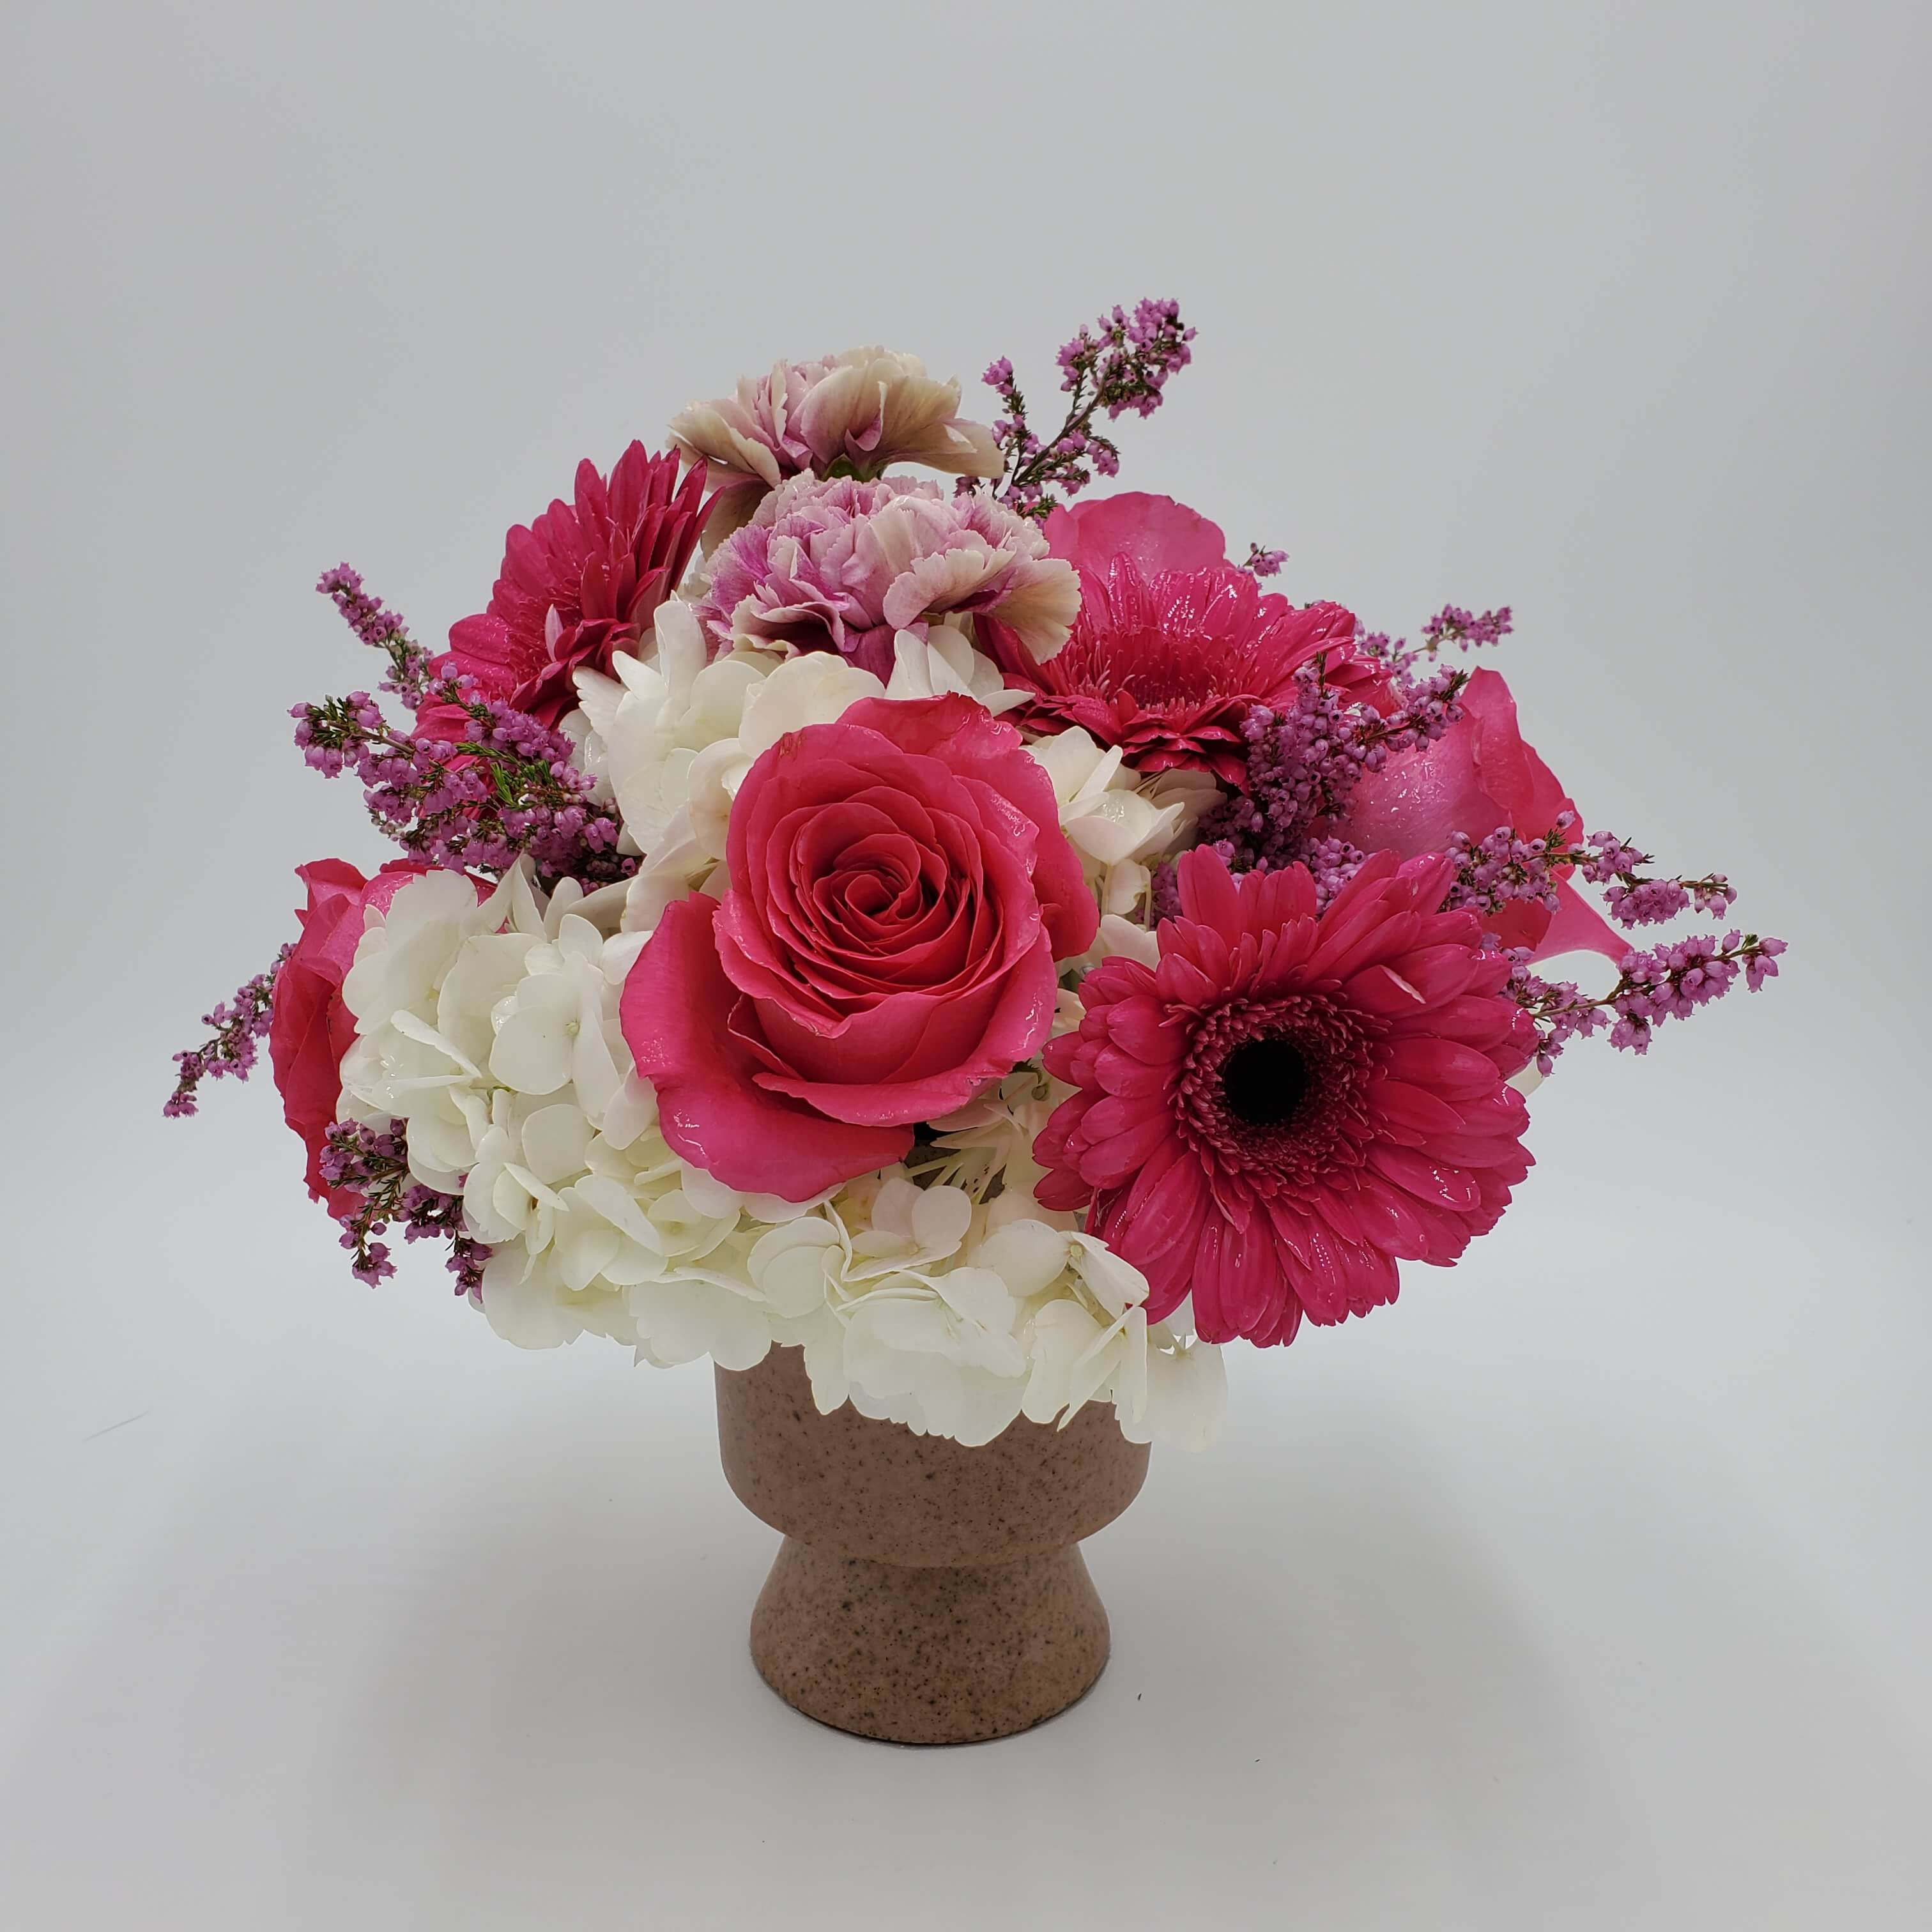 Pink and white Romantic floral design